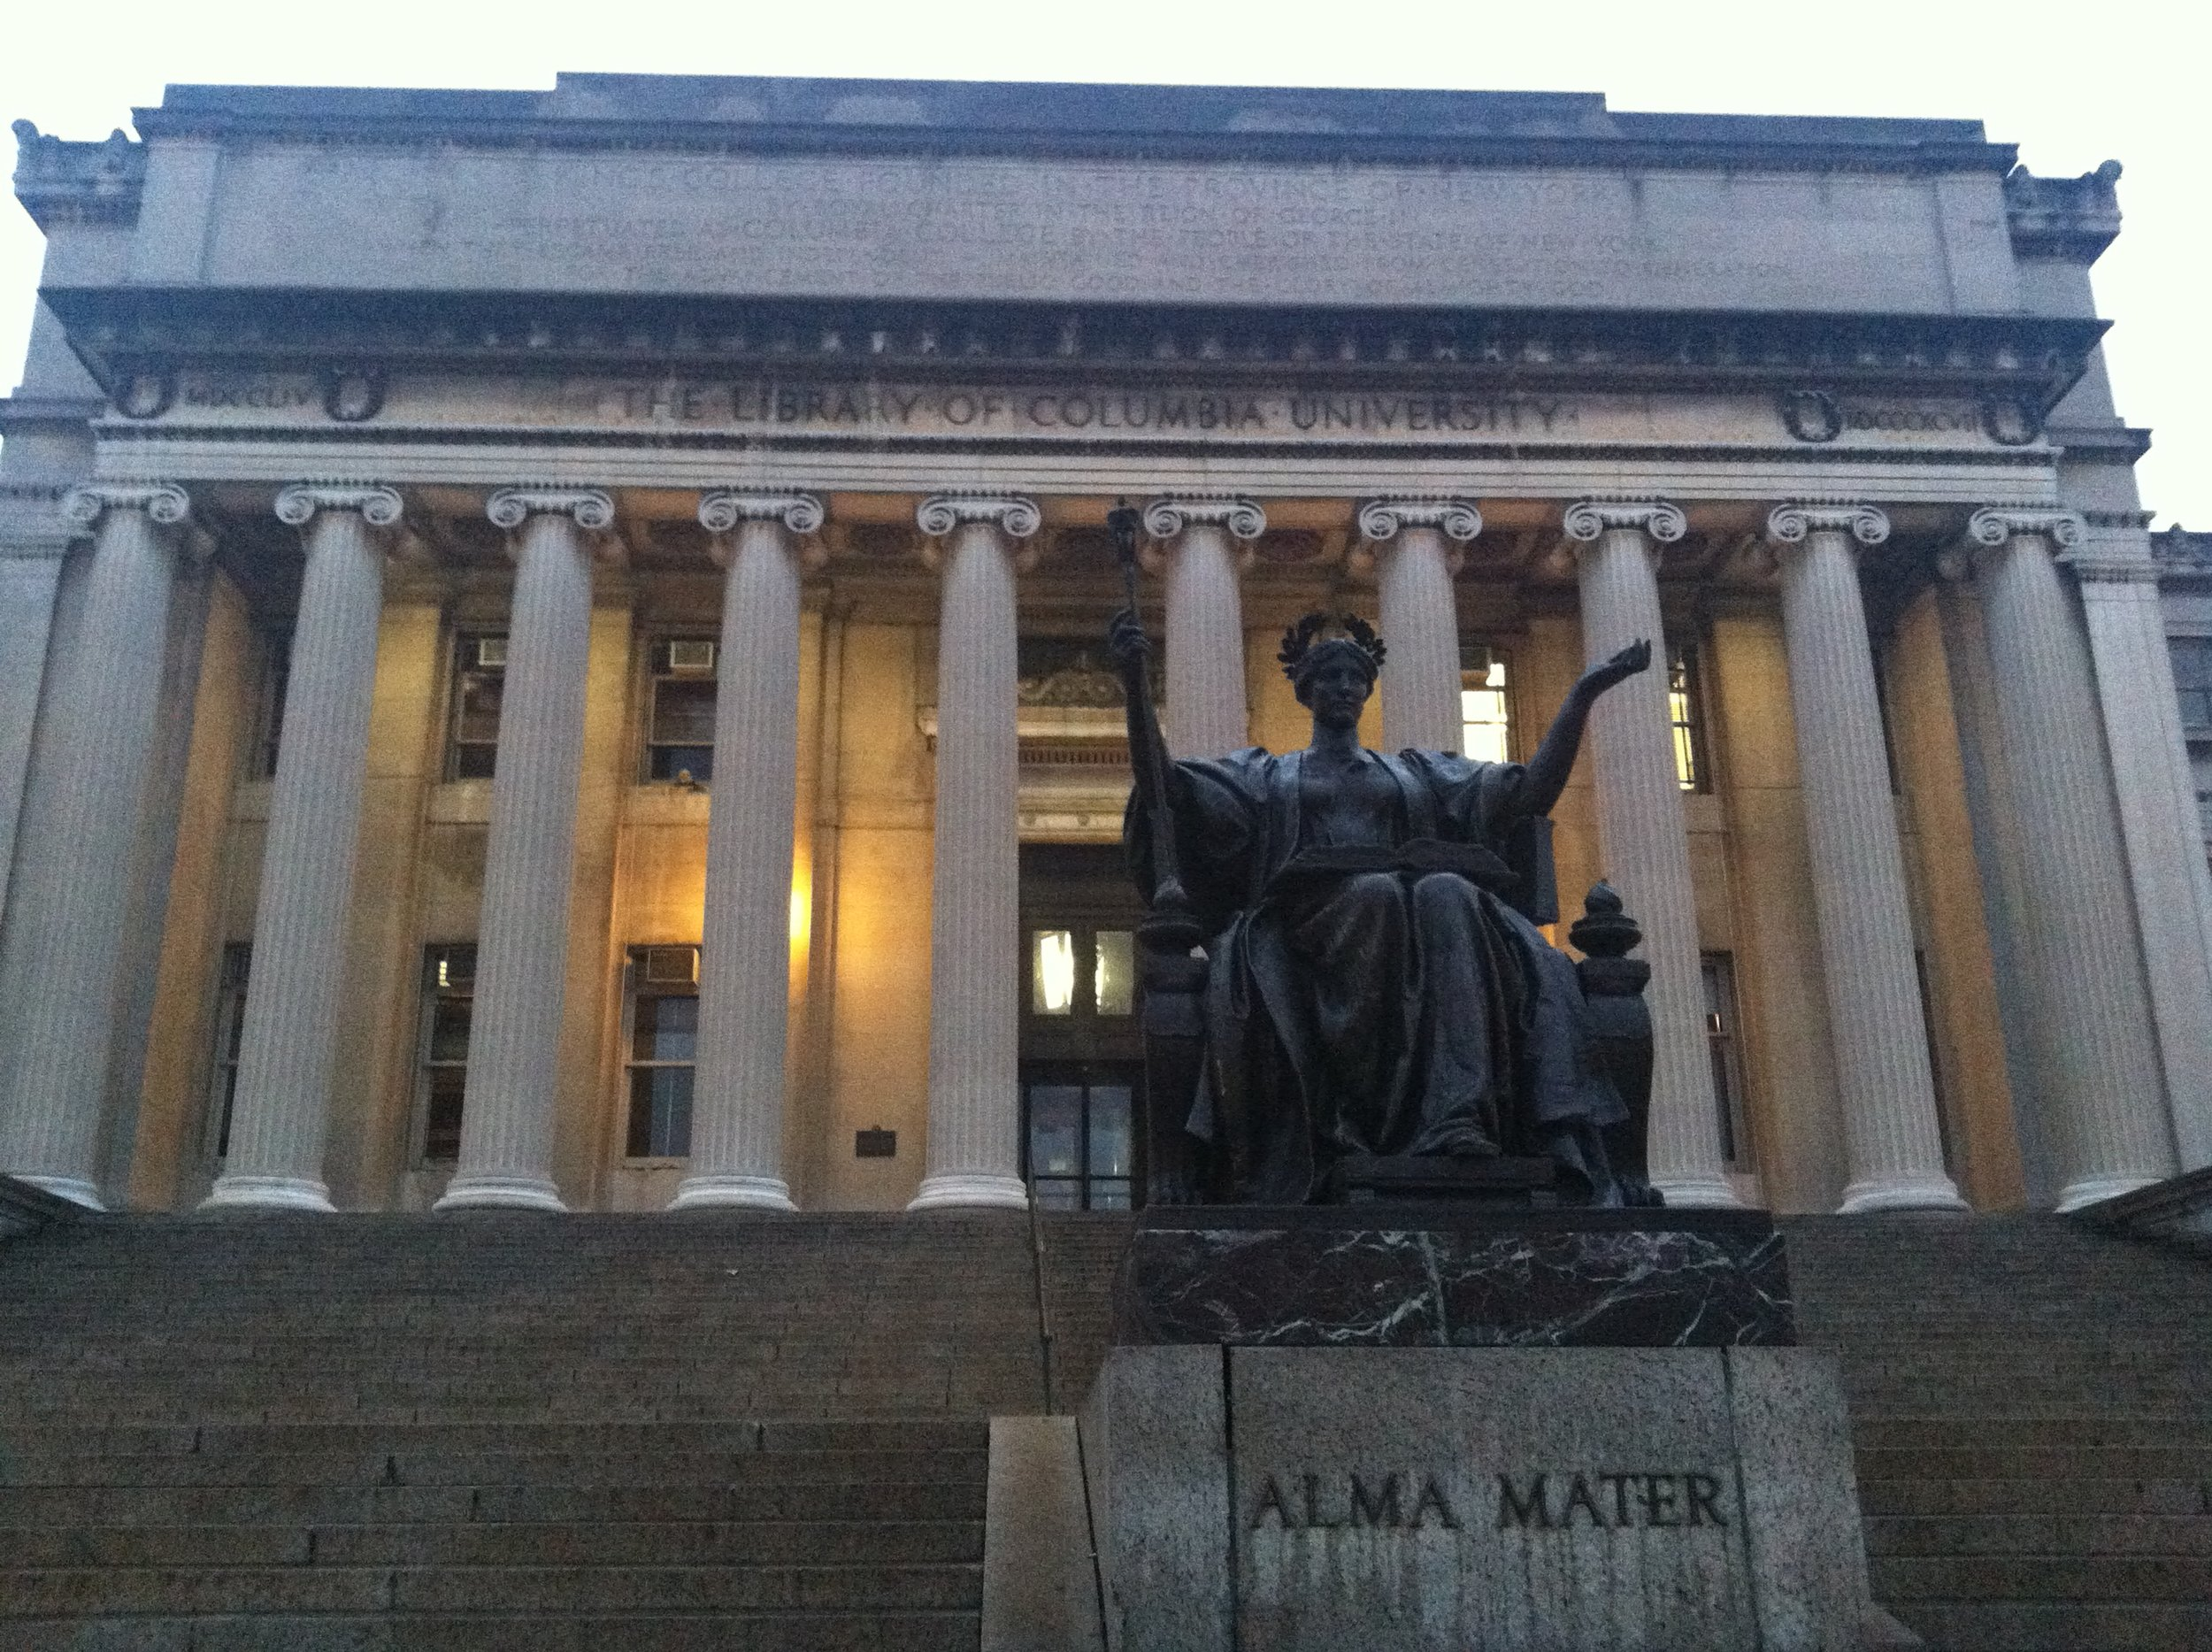 Columbia University Library. Photo by Cori O'Connor.